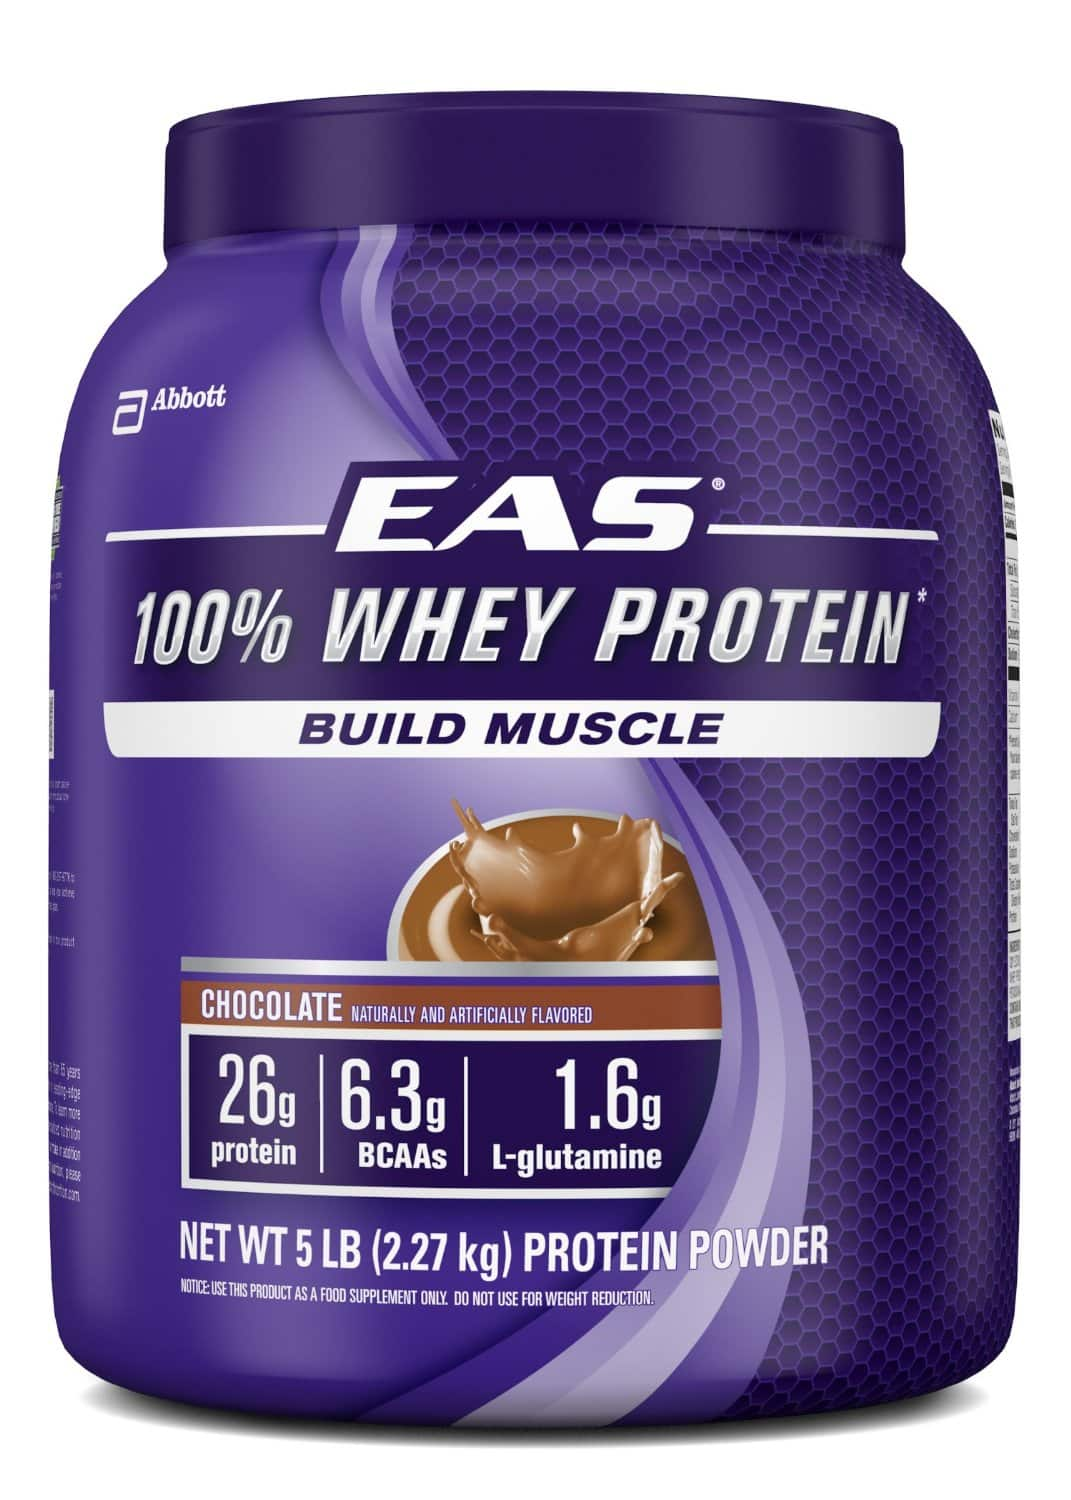 5-Lb EAS 100% Whey Protein Powder in Vanilla $26.30 (5% S&S) or $22.79 (15% S&S) + Free Shipping at Amazon